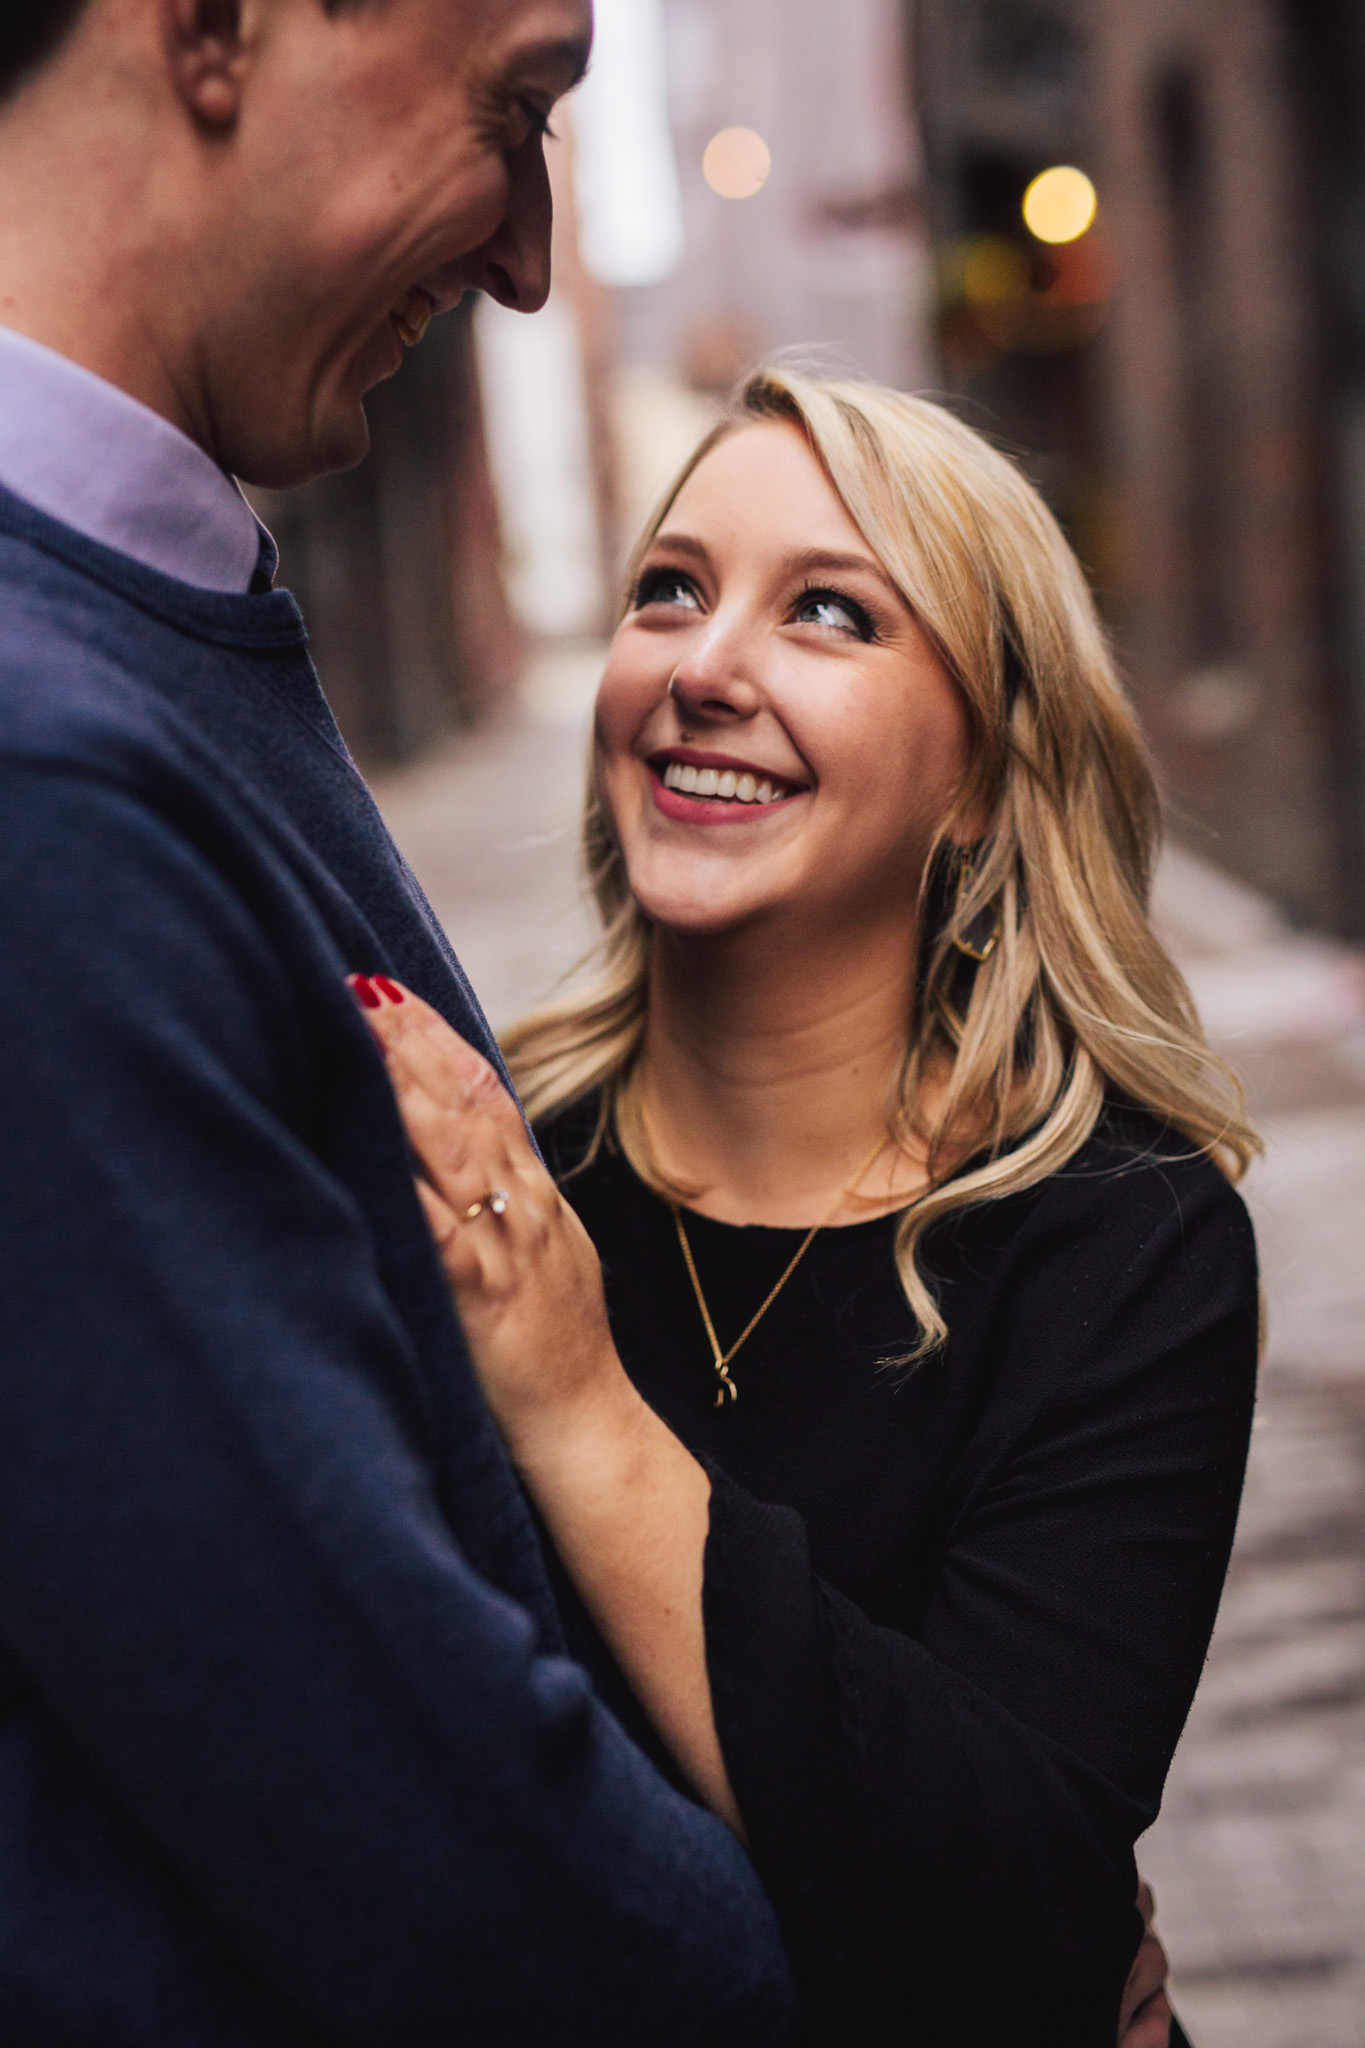 Seattle Pioneer Square Cozy Engagement Photos (8 of 14).jpg